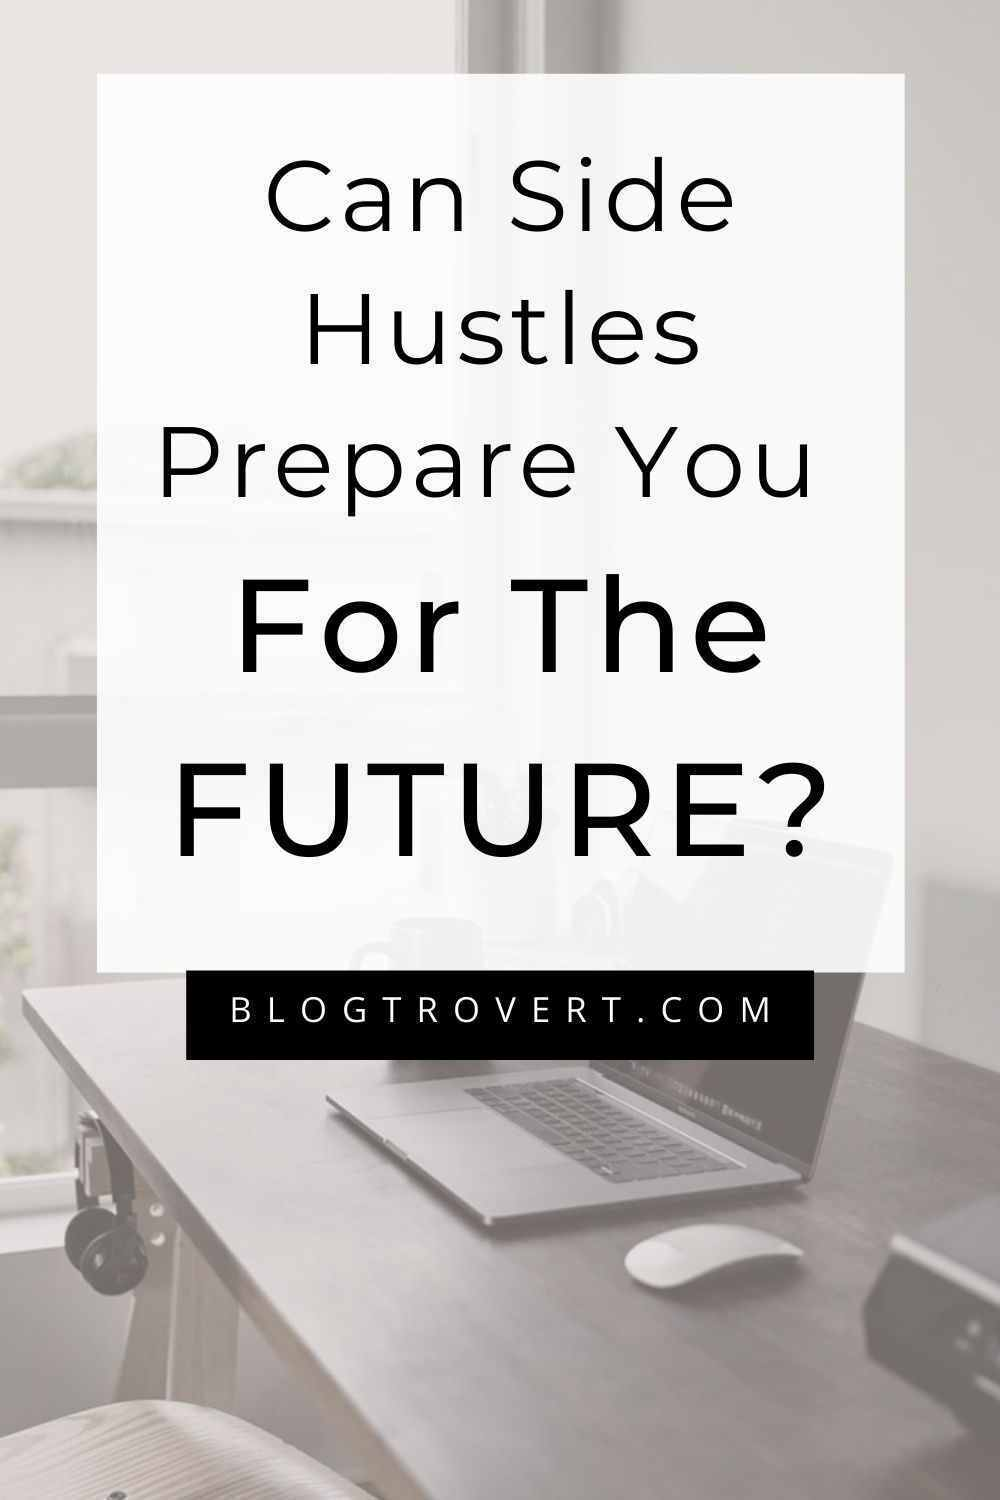 Find your future with side hustles